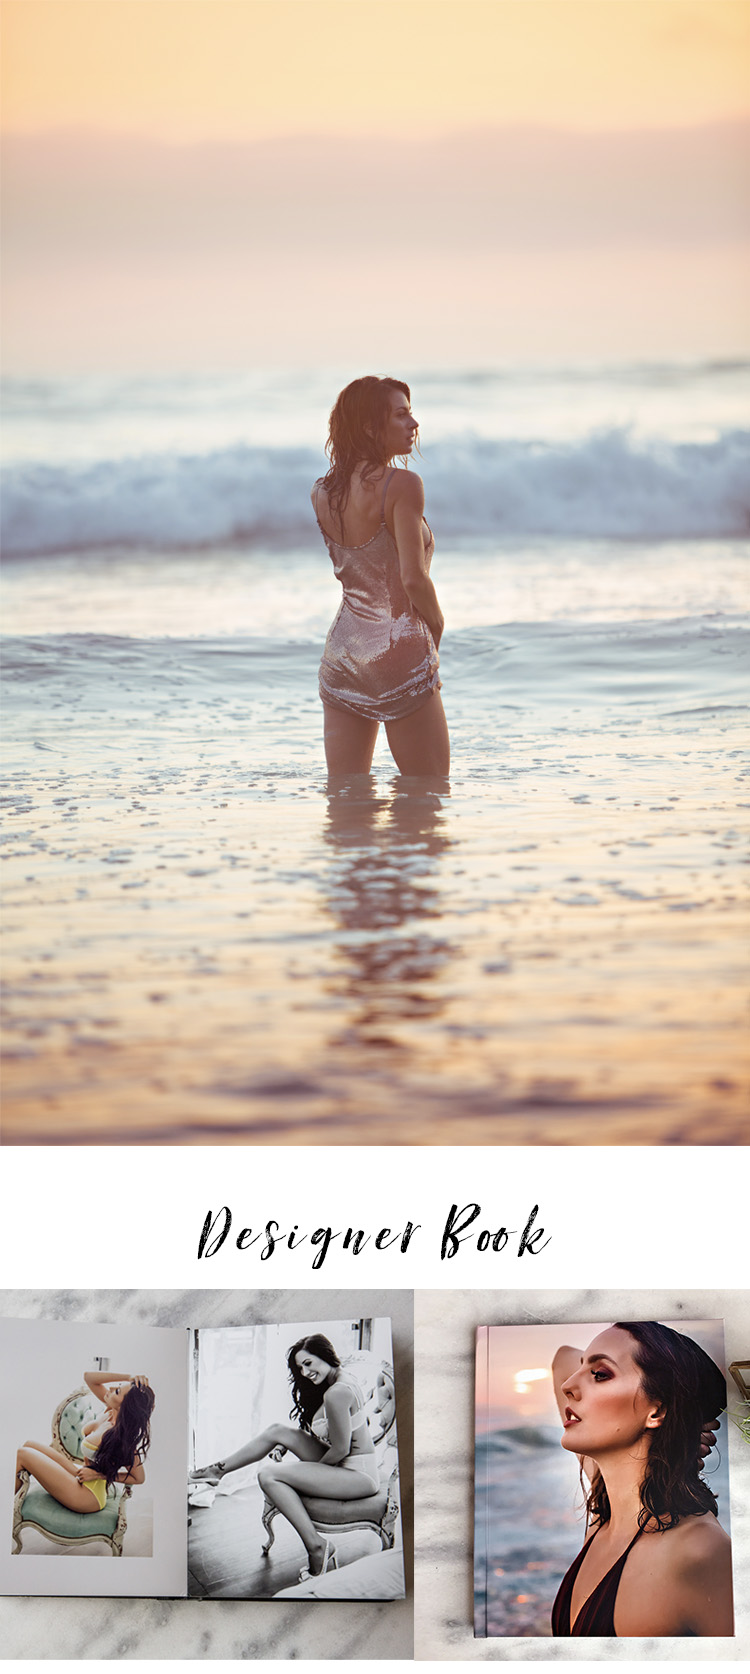 BY THE SEA | PRICING - 3 in-house looks/outfits ($750 value):– photographed in our studio- 2.5 hours in house session time2 sunset by the sea looks/outfits($1000 value):- 45 minute session time on our closest and loved beach1 hair and make-up look ($150 value)Online viewing of proofs8.5×11 Designer Art Book ($895 value)-25 pages-35 images-Magazine quality editing and airbrushingAll high resolution digital files of the shoot ($1000 value)A la carte value: $3795 ($2350 discount!)In the past this package was $2700, our new location allows us to have this huge discounted price below!!PACKAGE PRICE: $1389 + taxPayment plans available with zero interest.1/3 due at booking. CLICK HERE TO SEE NEXT AVAILABLE SPOTS!